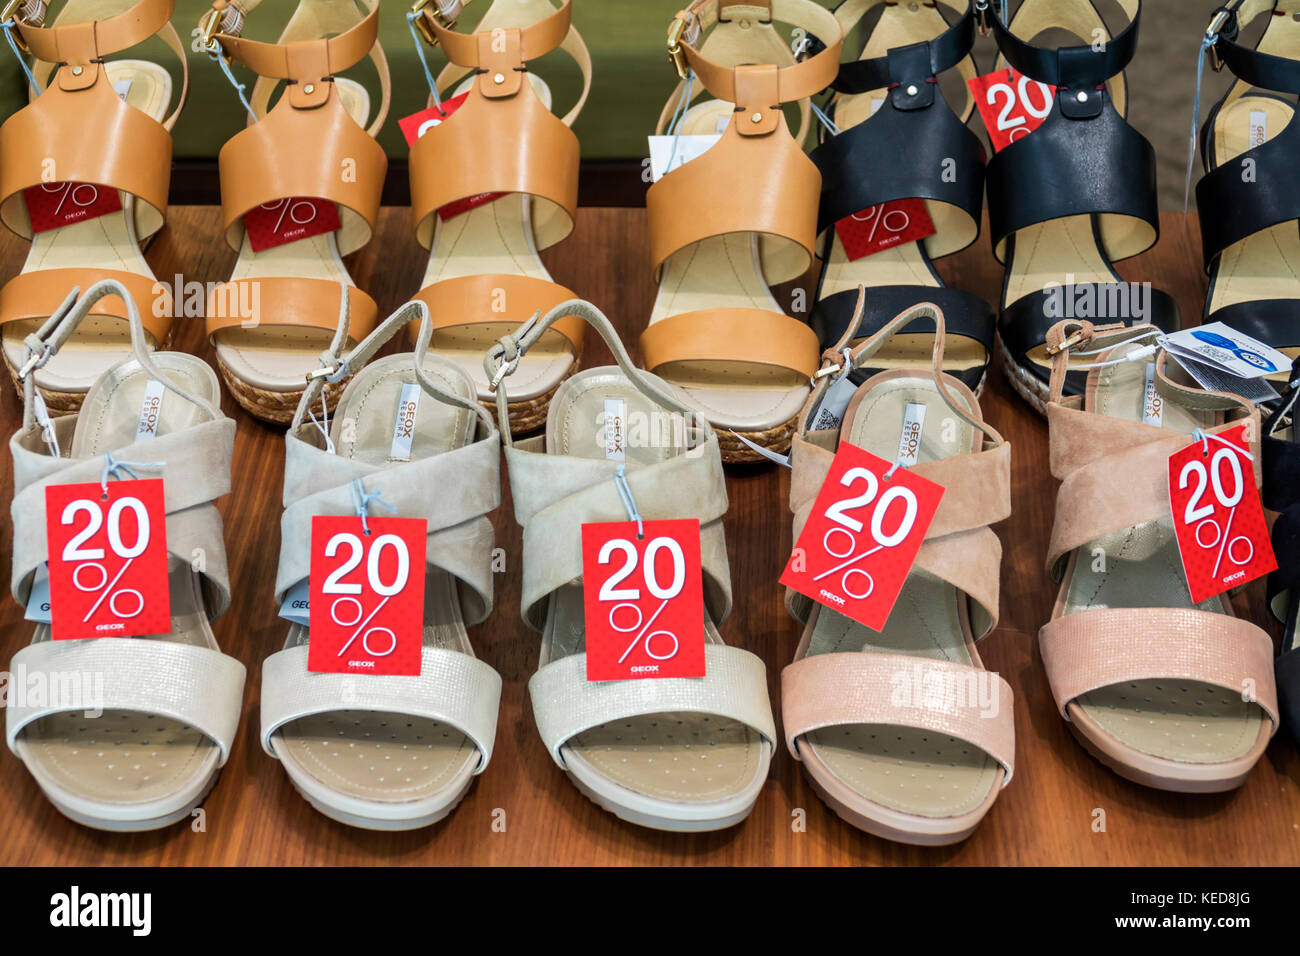 Lisbon Portugal Rossio Square Pedro IV Square shoes store shopping sandals discount display sale shoes - Stock Image